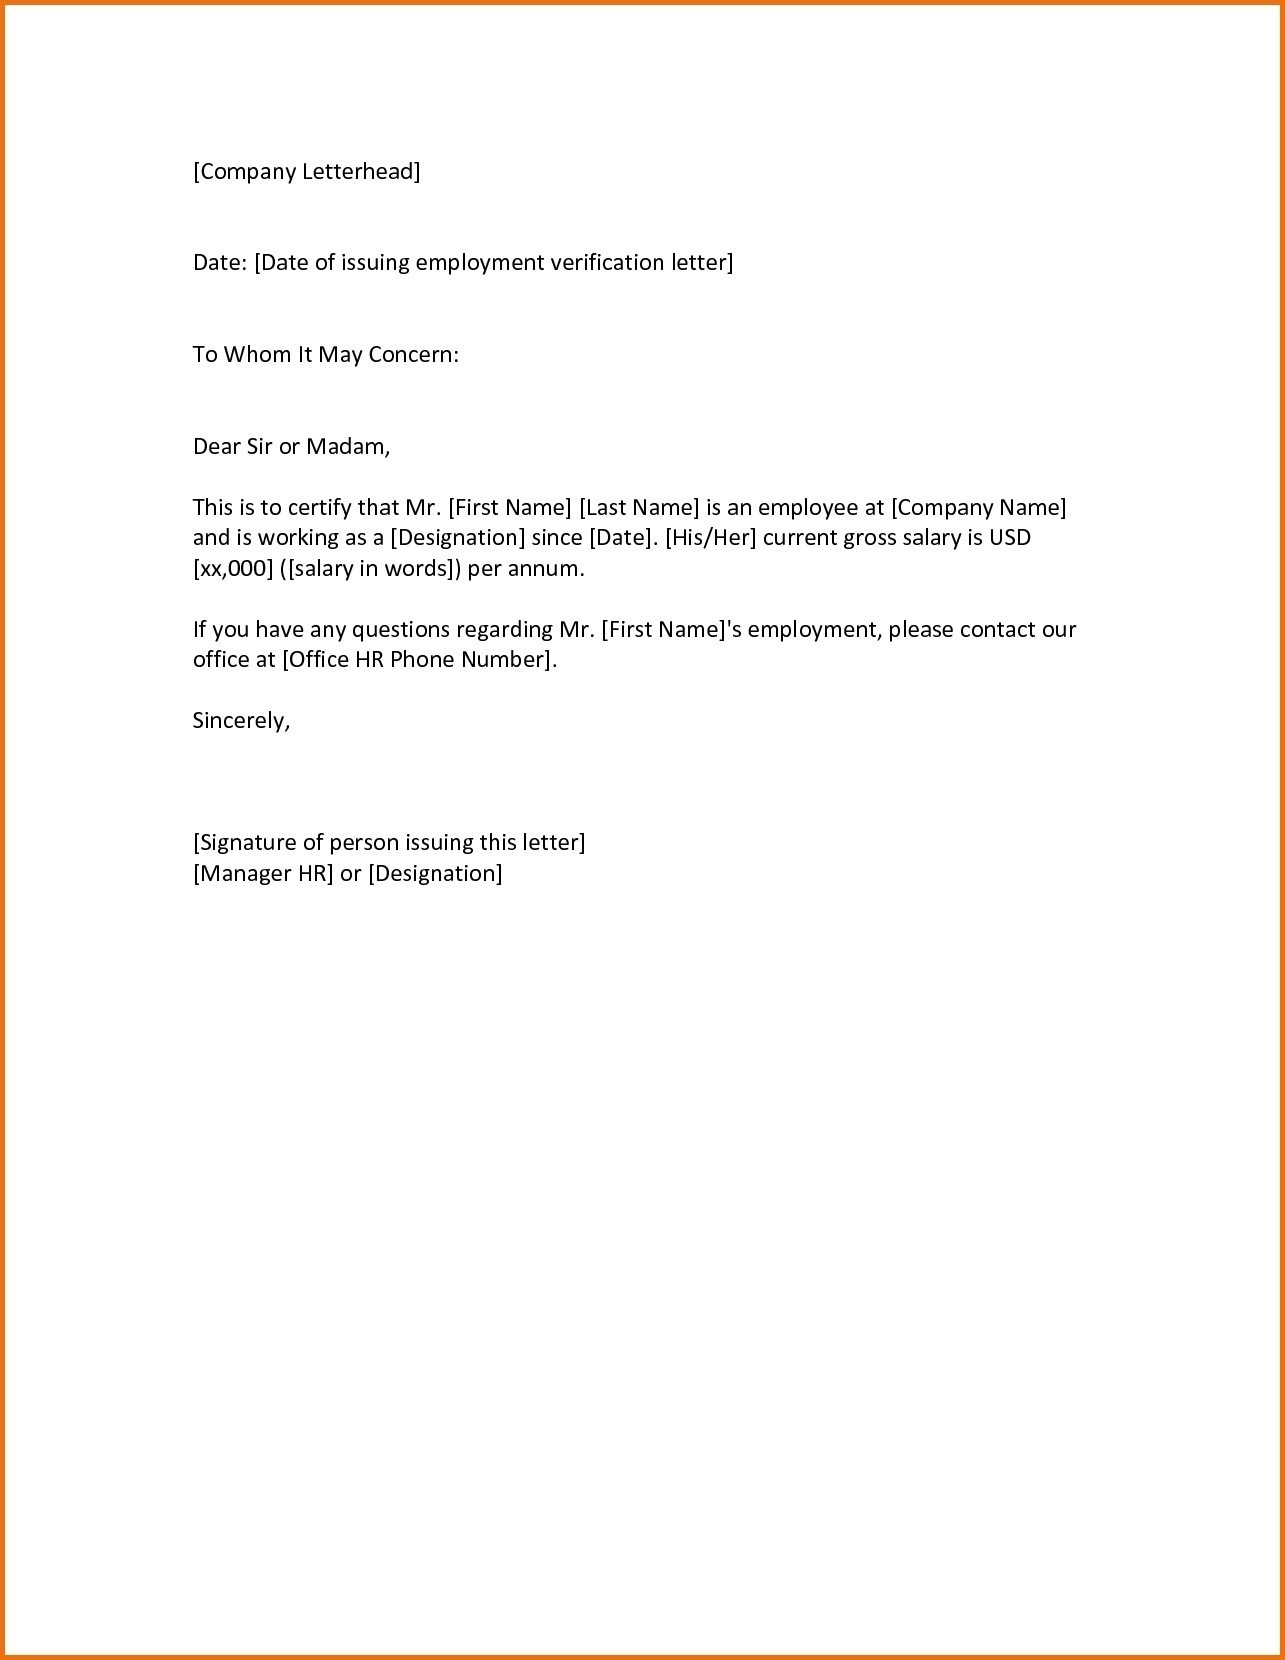 employment verification letter to whom it may concern template request letter format to whom it